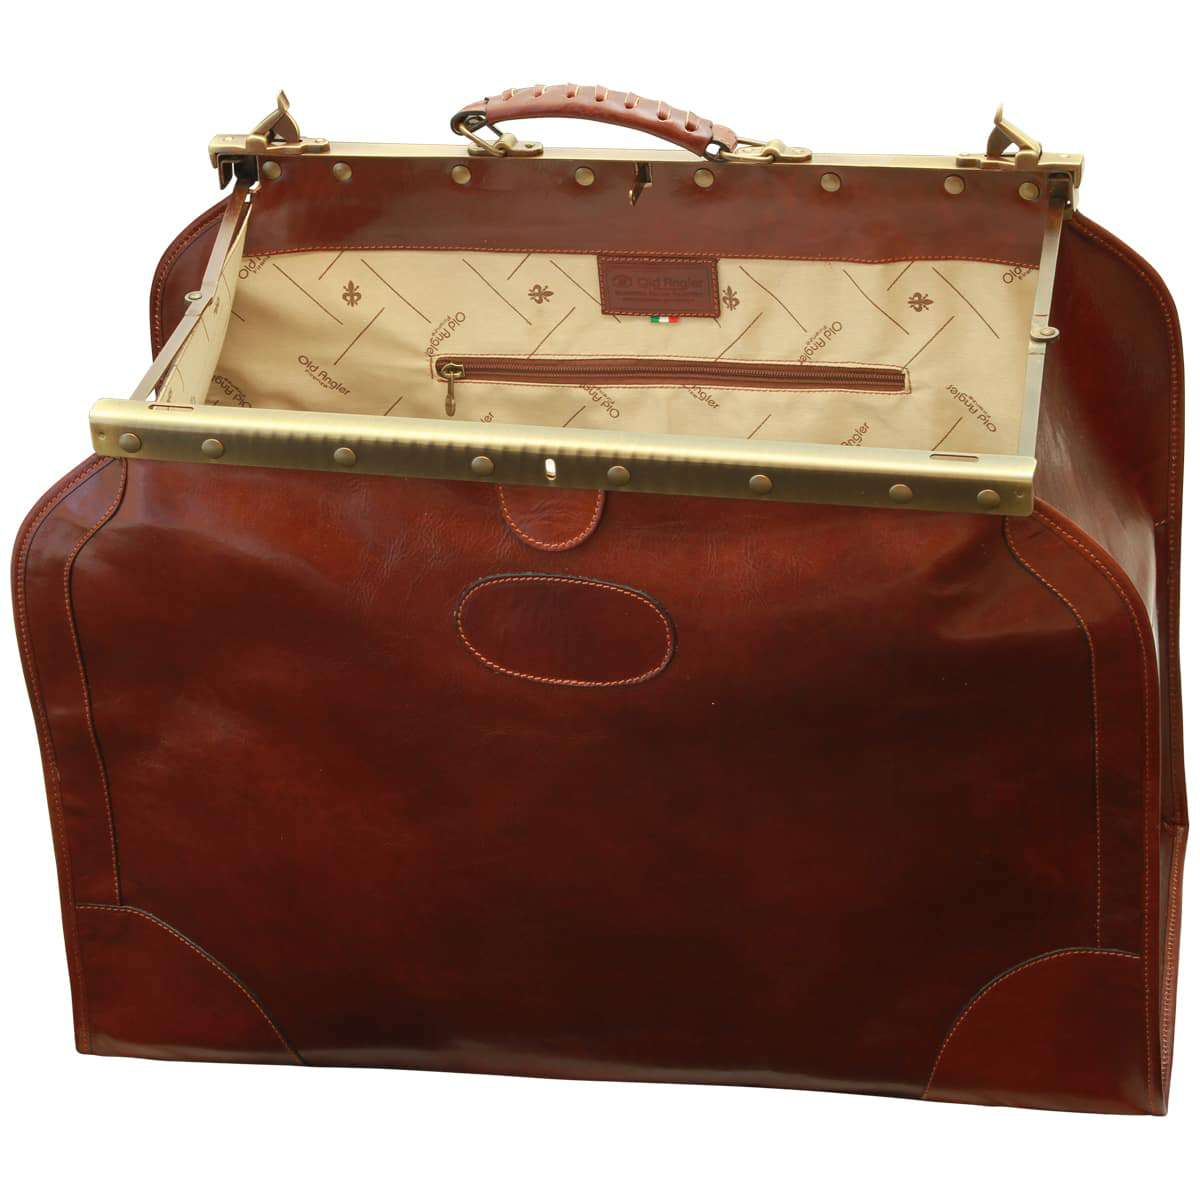 The OldAngler Shop | Borse in Pelle |  1300 - Borsa da viaggio